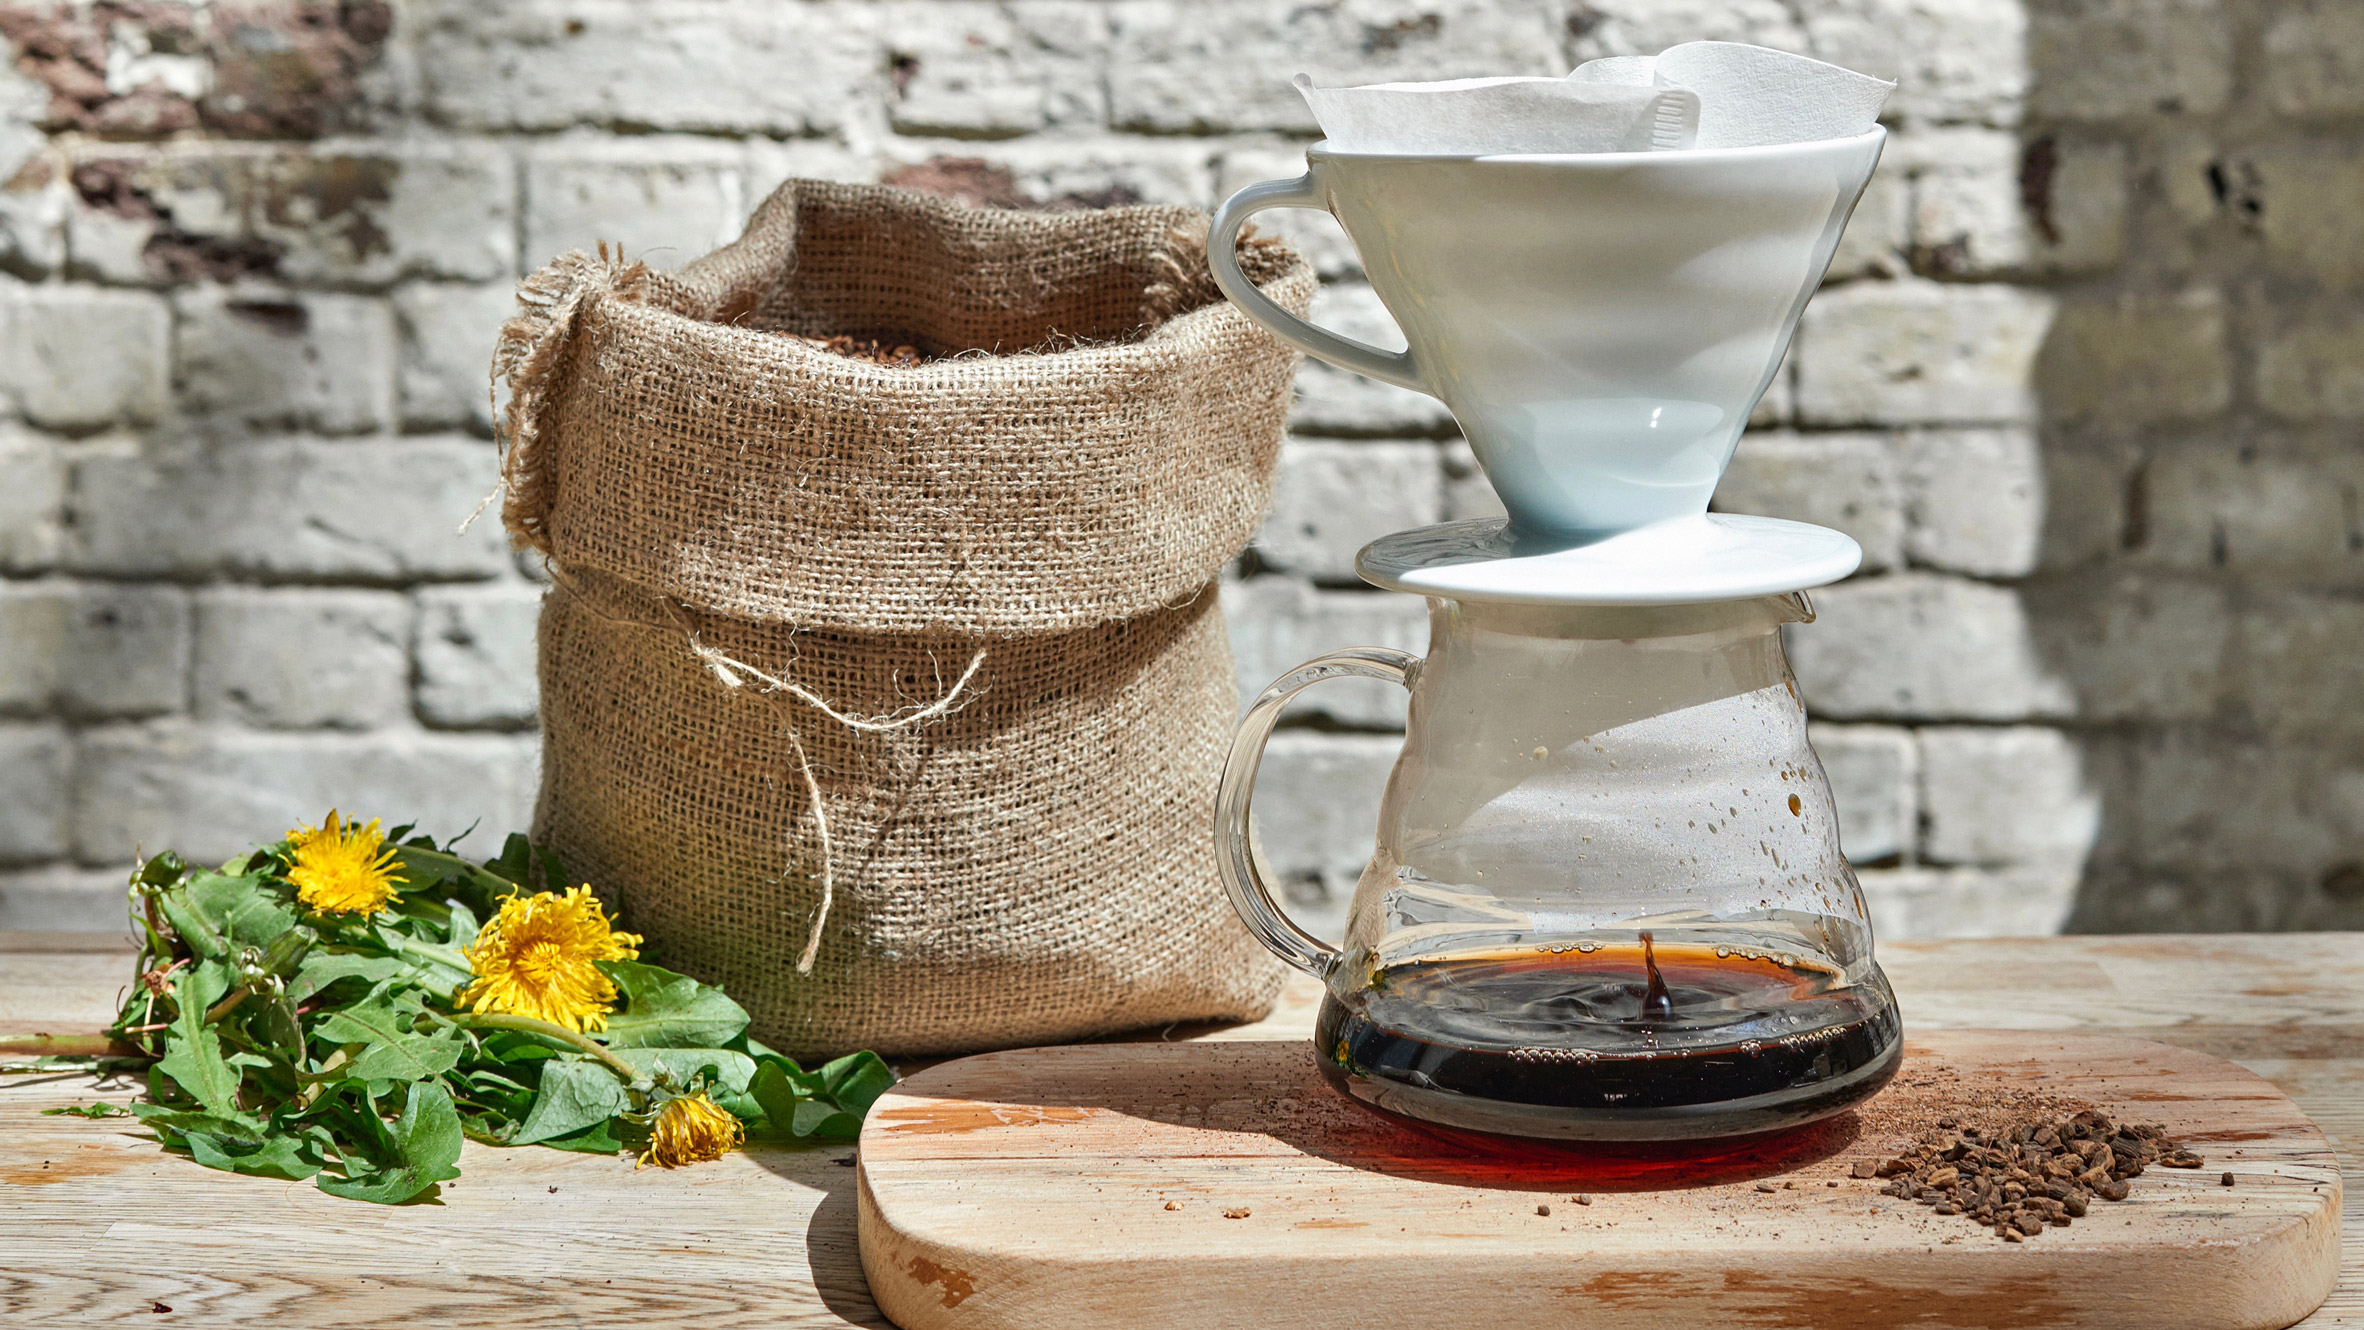 Daisy Newdick makes coffee from dandelions to promote biodiversity